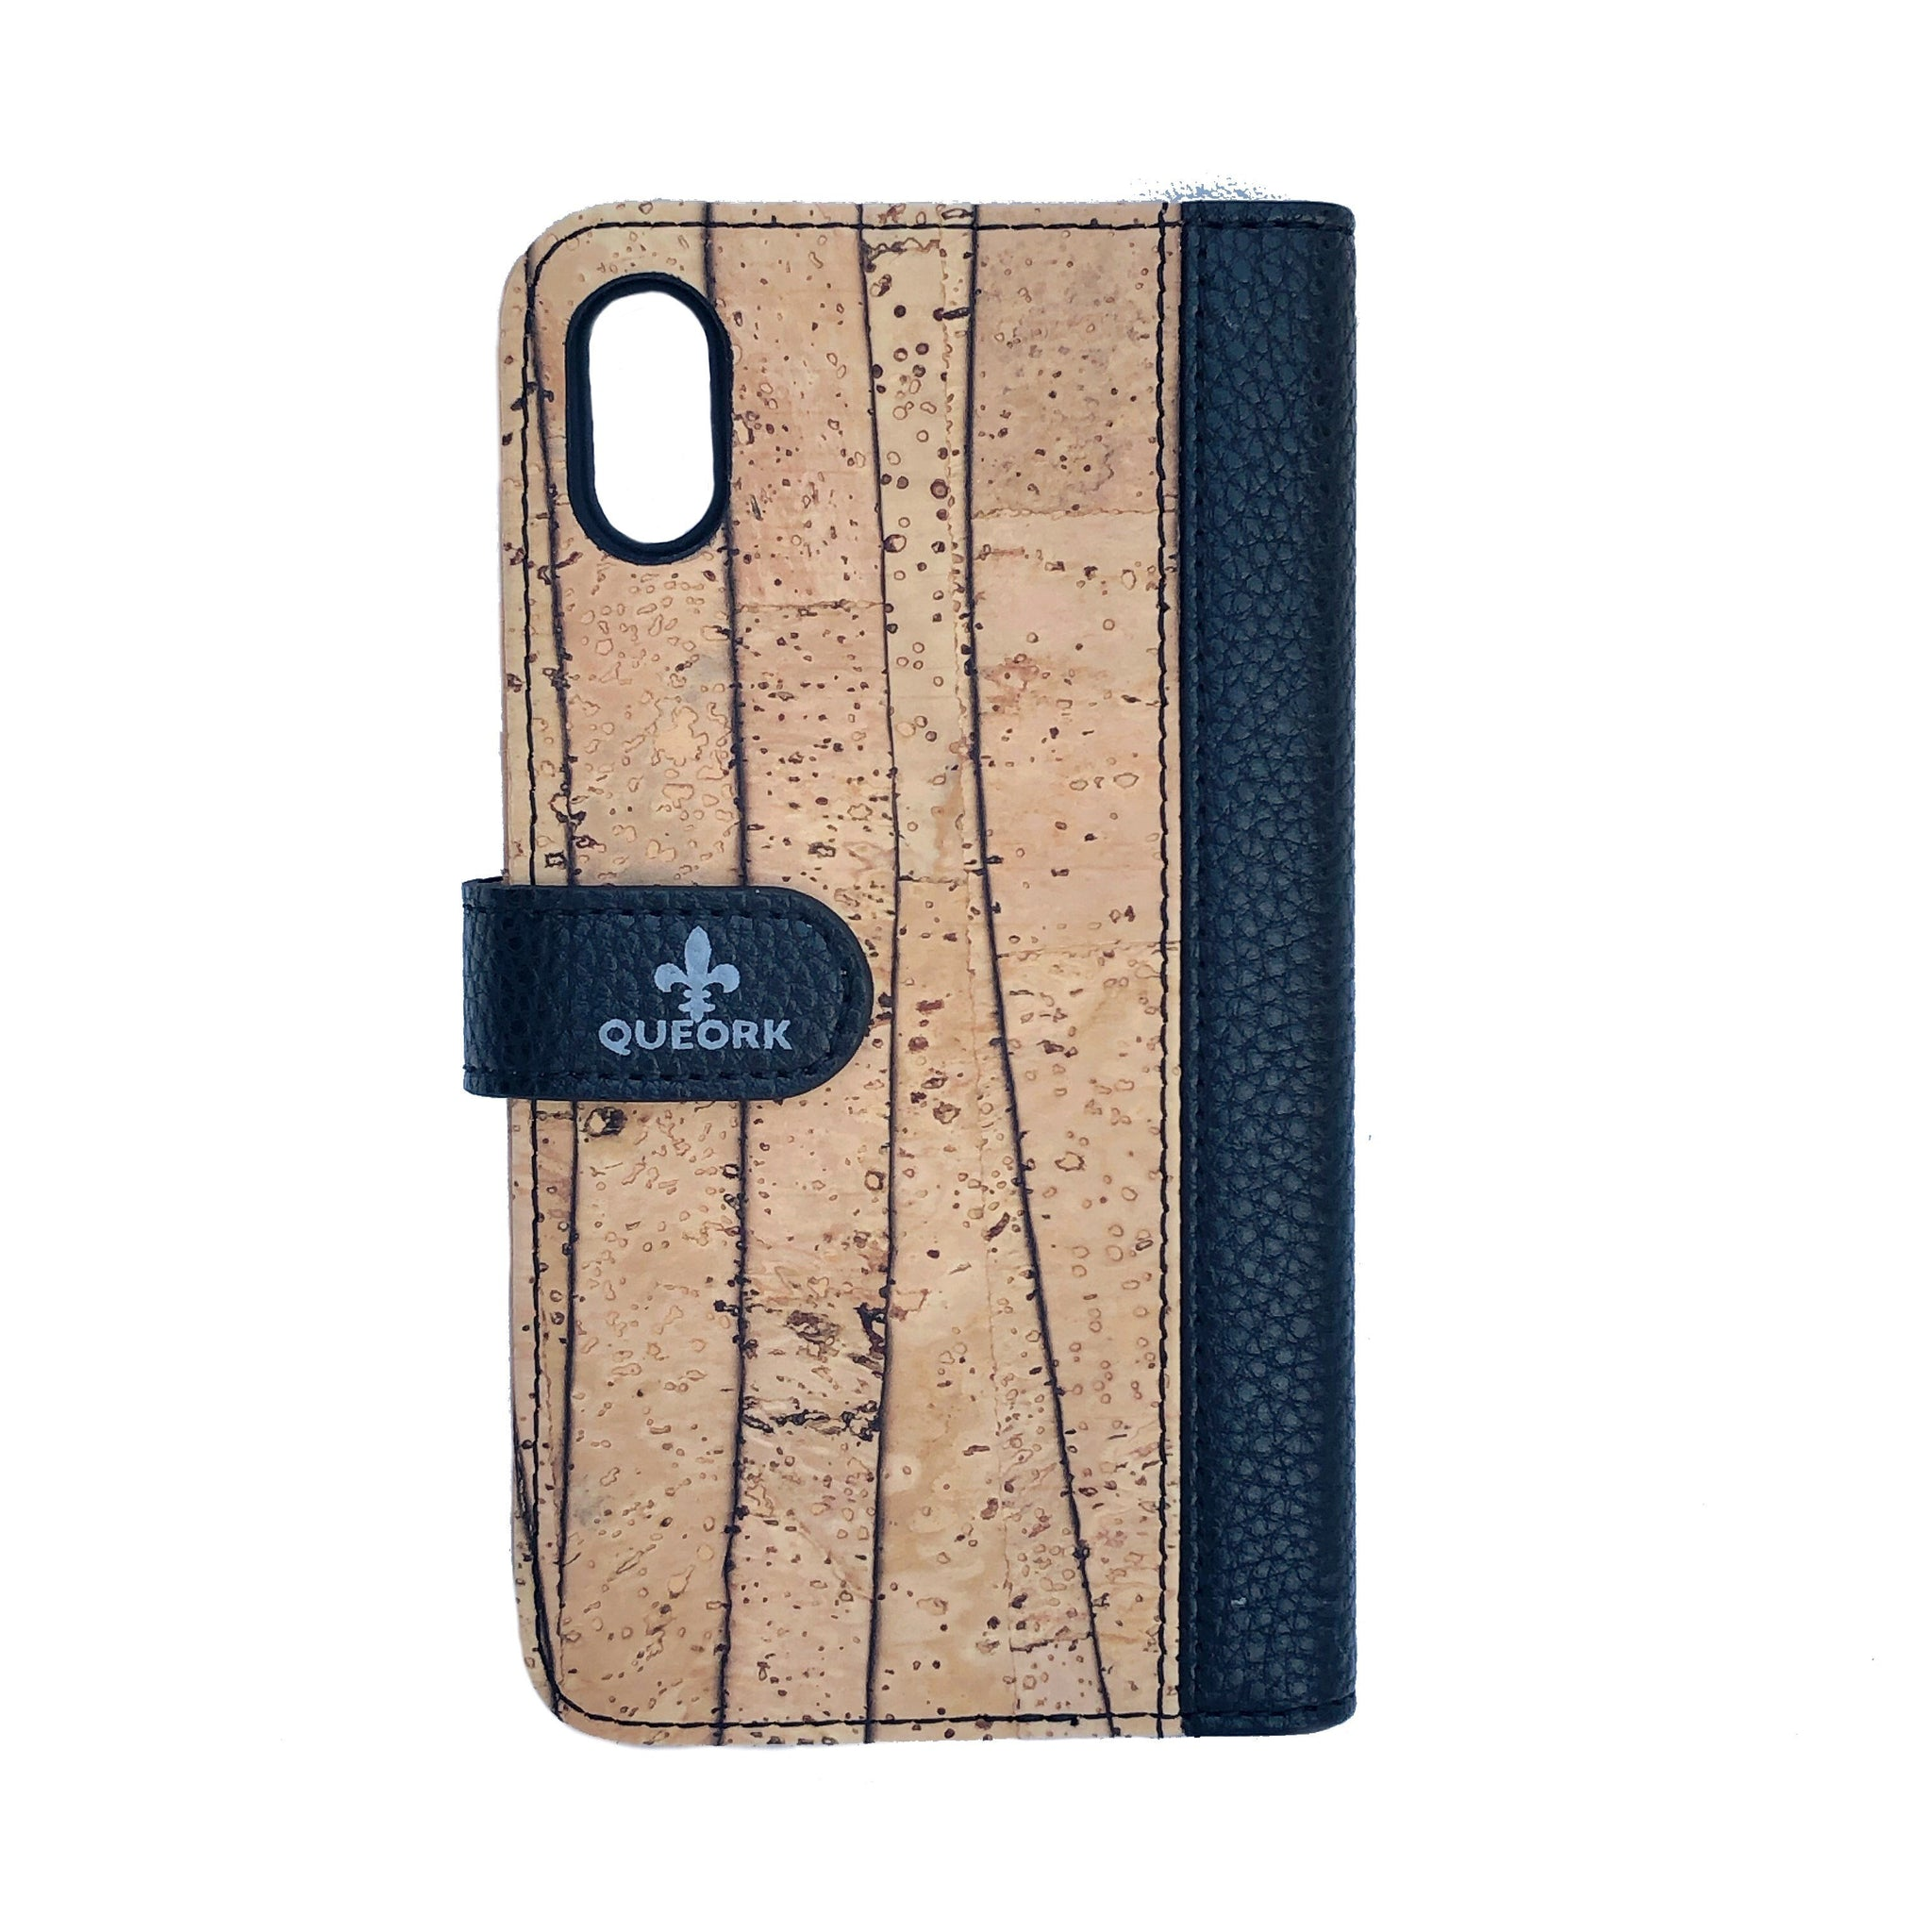 XR iPhone wallet case